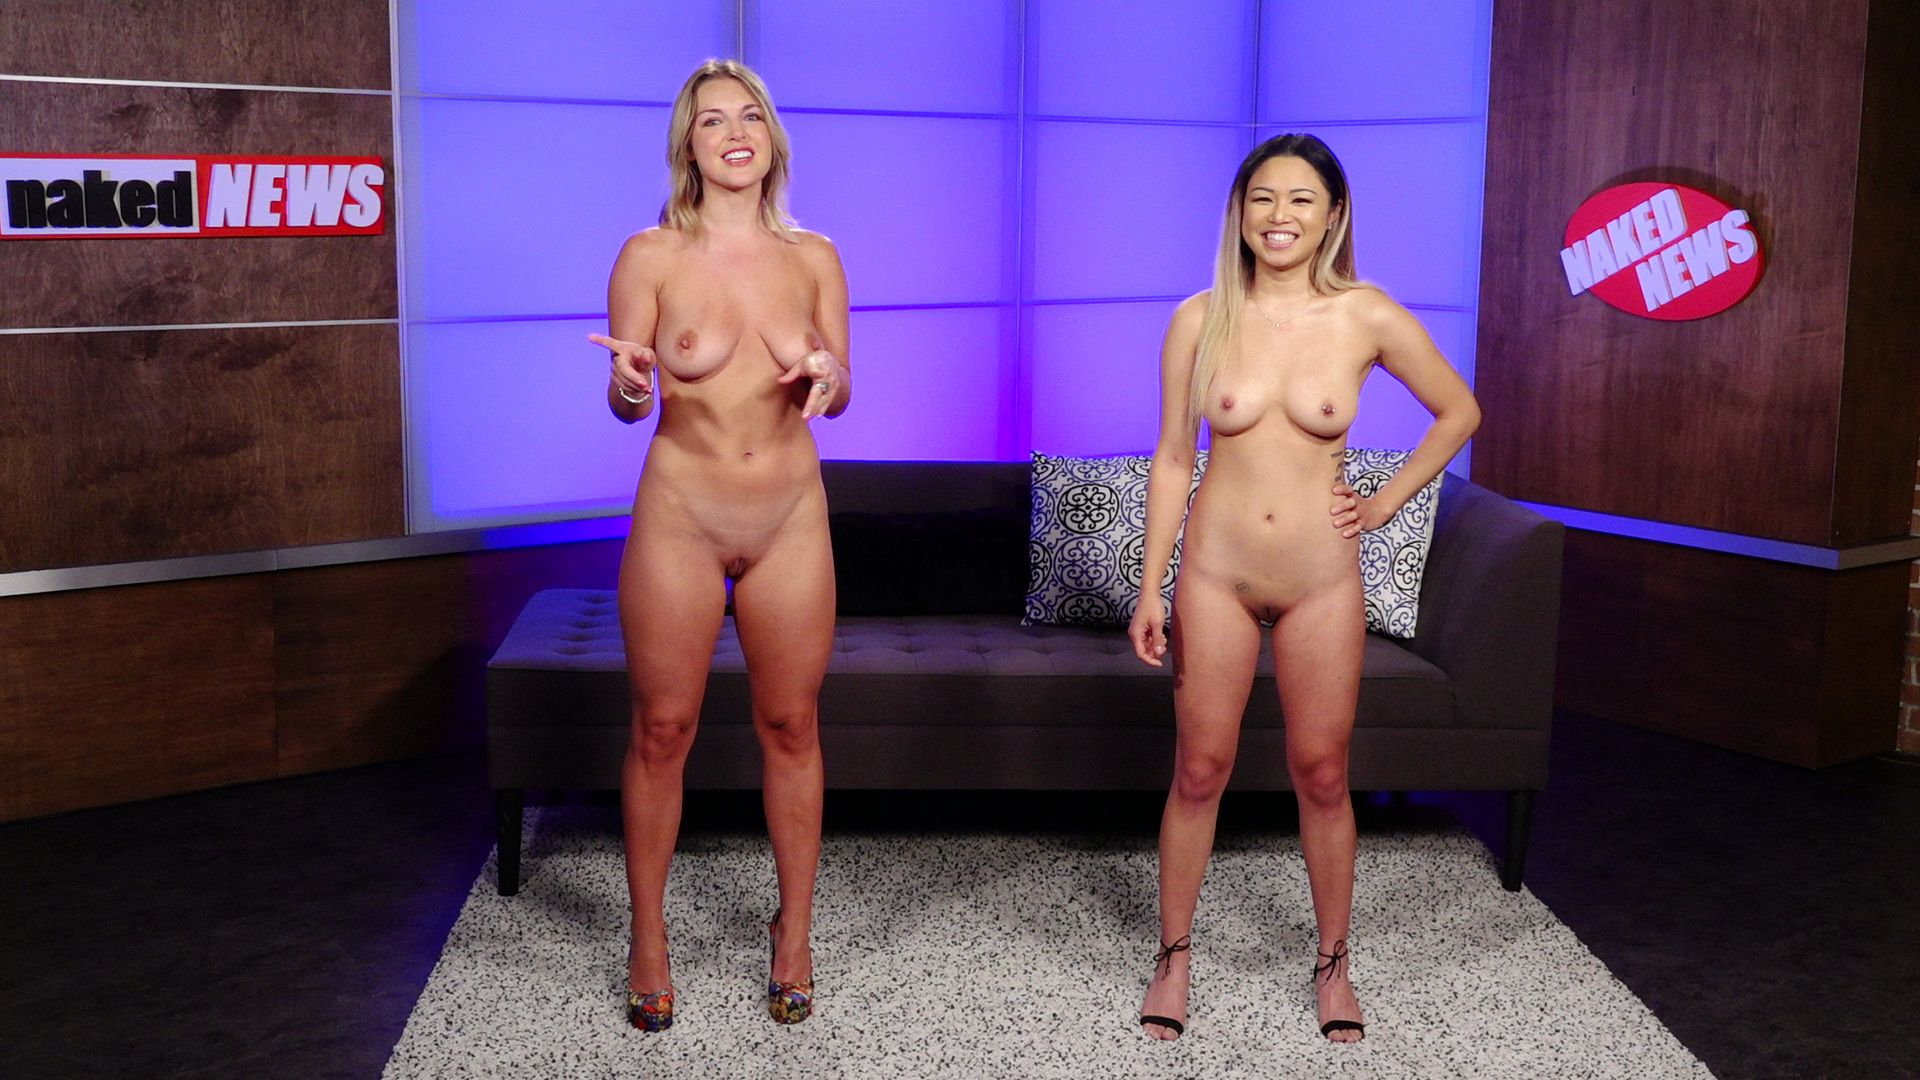 Naked news angie